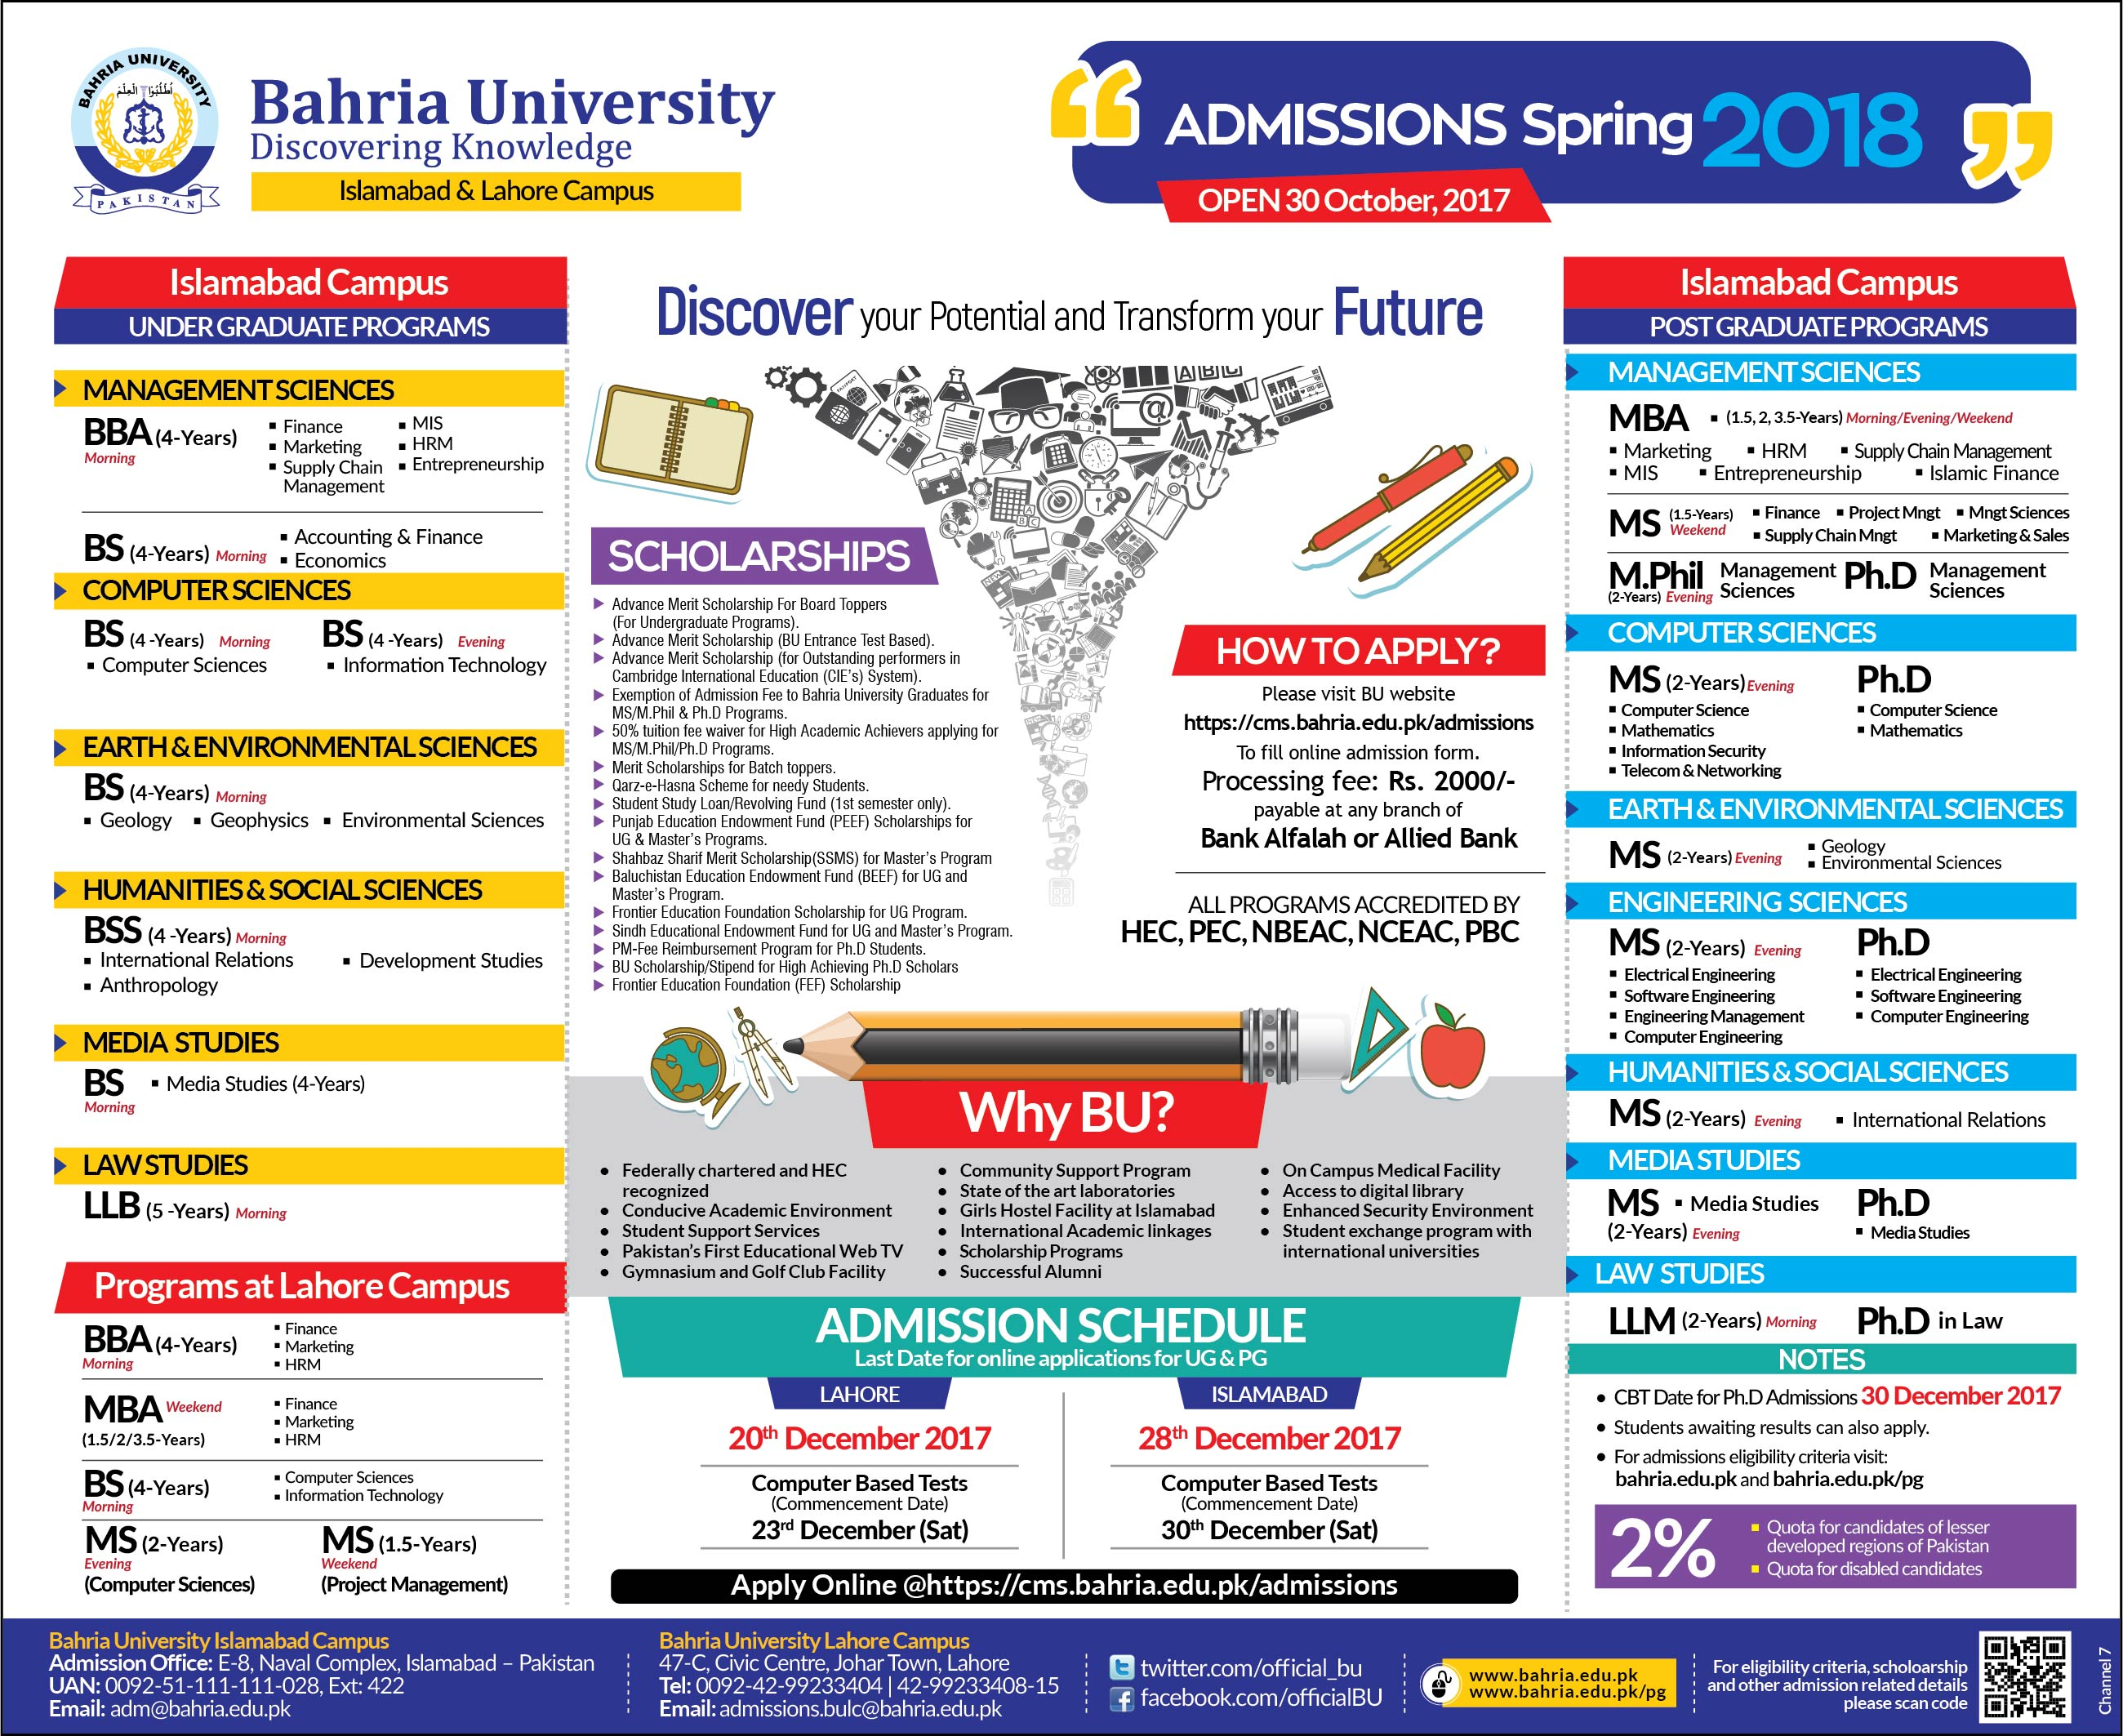 Bahria University Spring Admissions 2018 Islamabad & Lahore Campus